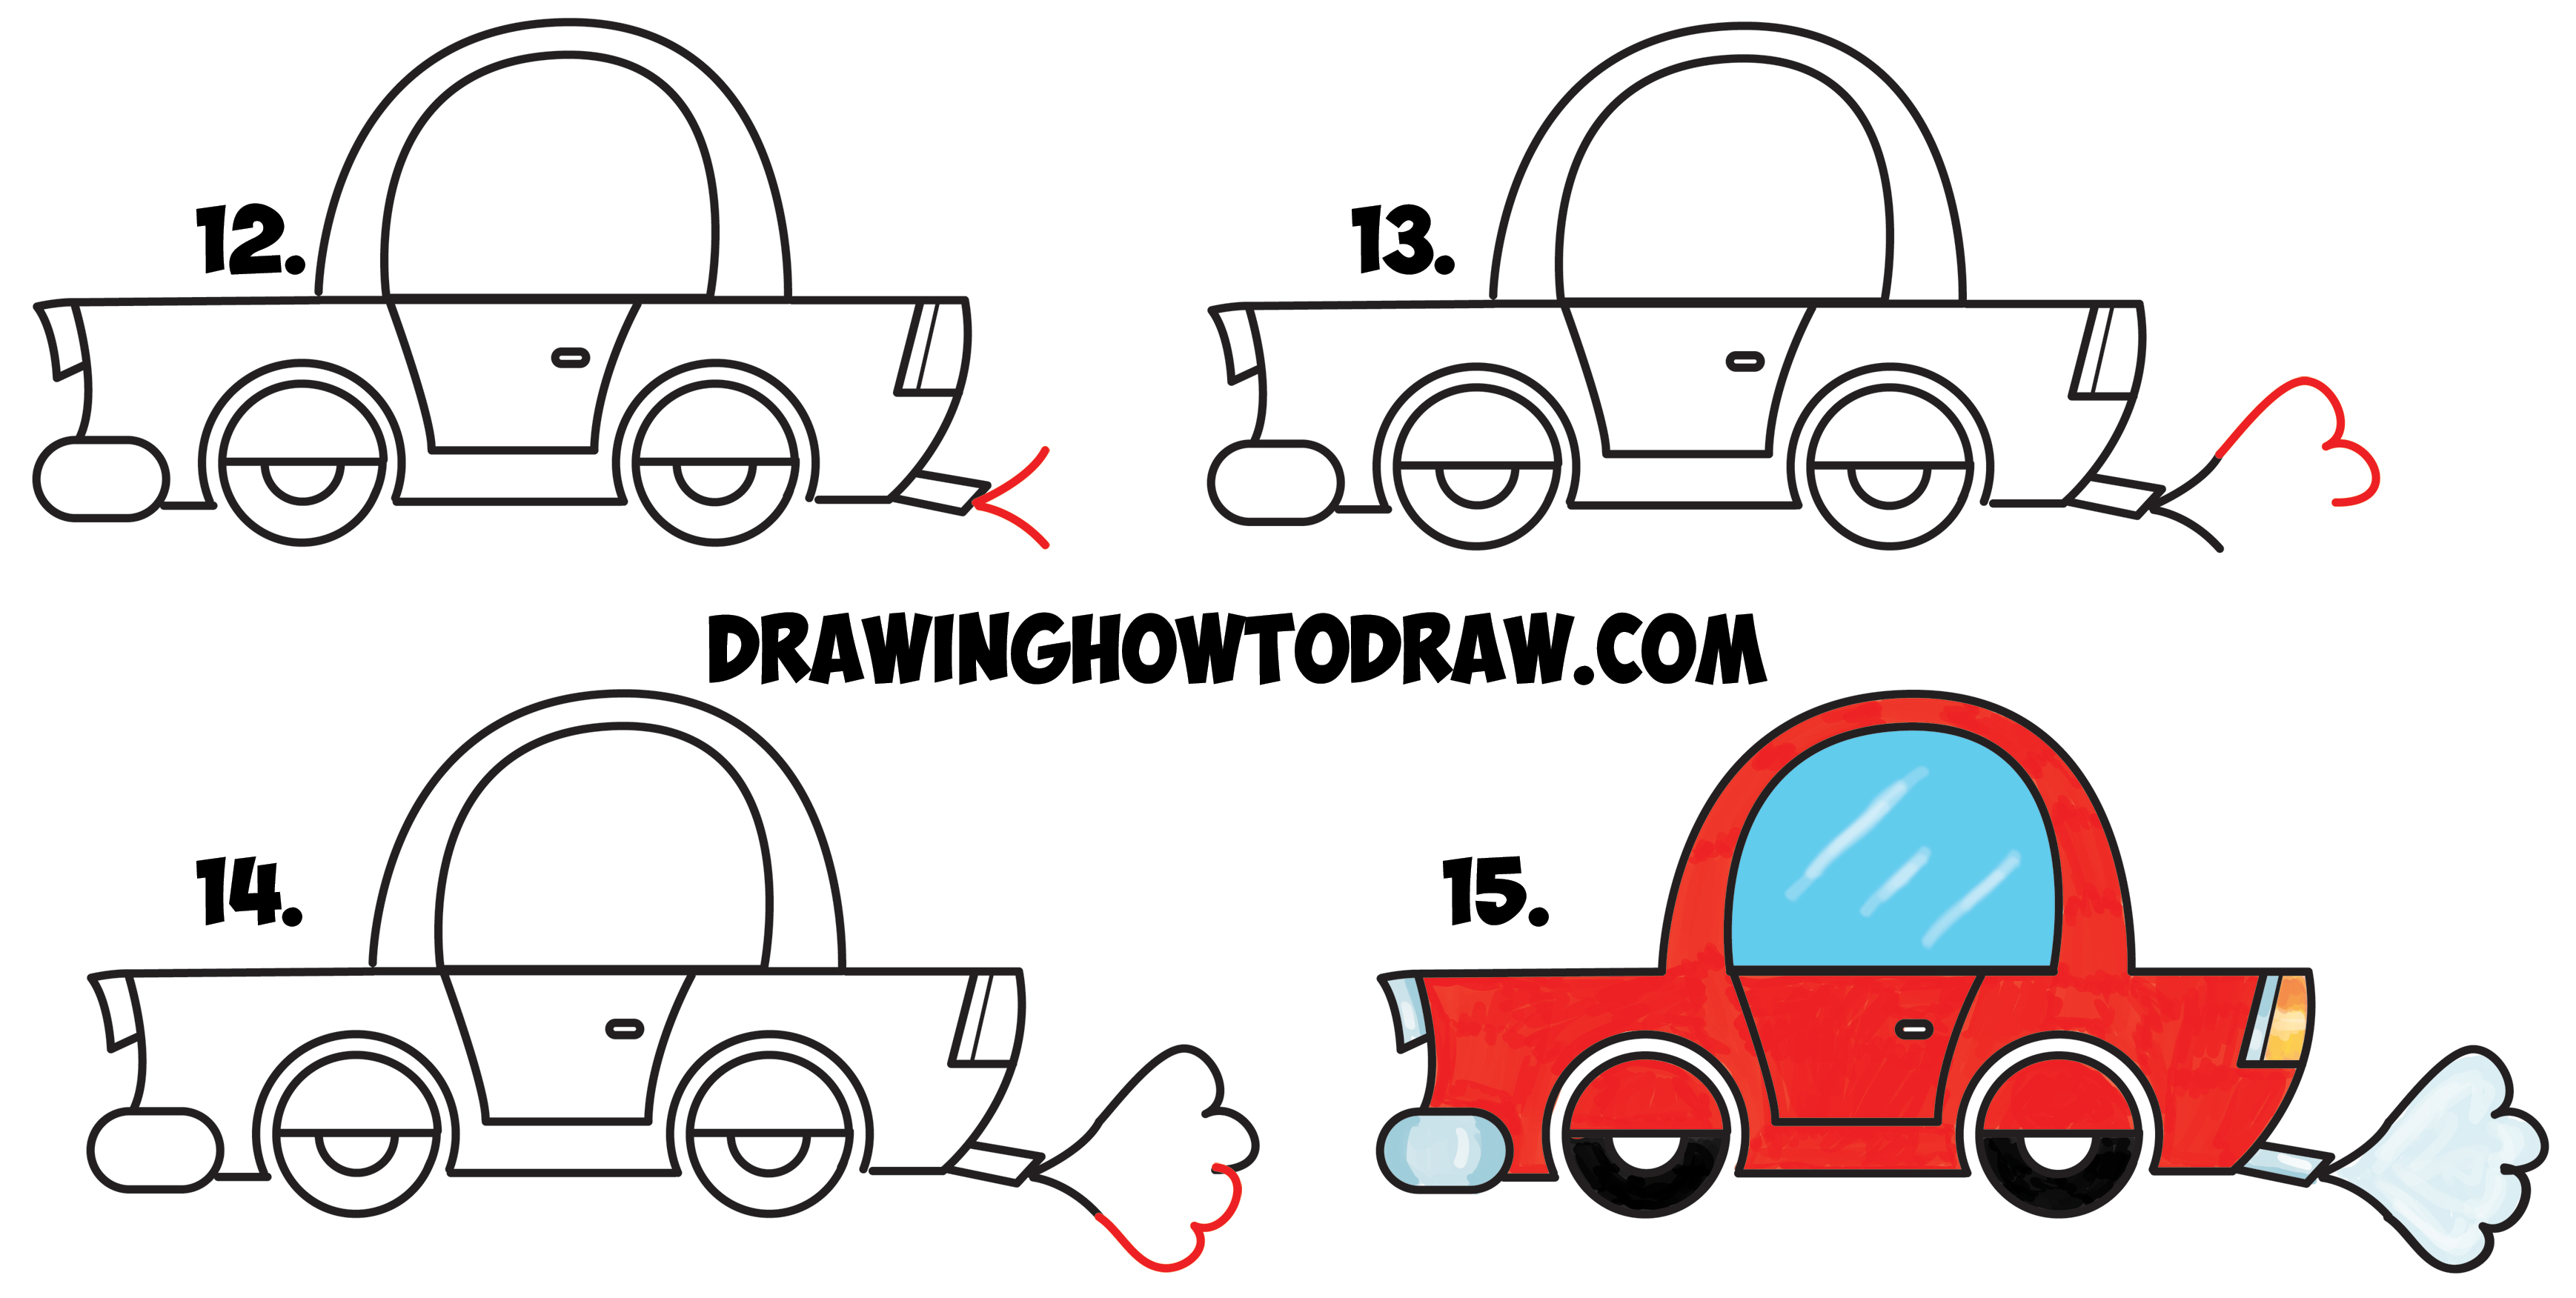 learn how to draw a cartoon car from lowercase letter e shapes simple step by - Easy Sports Drawings